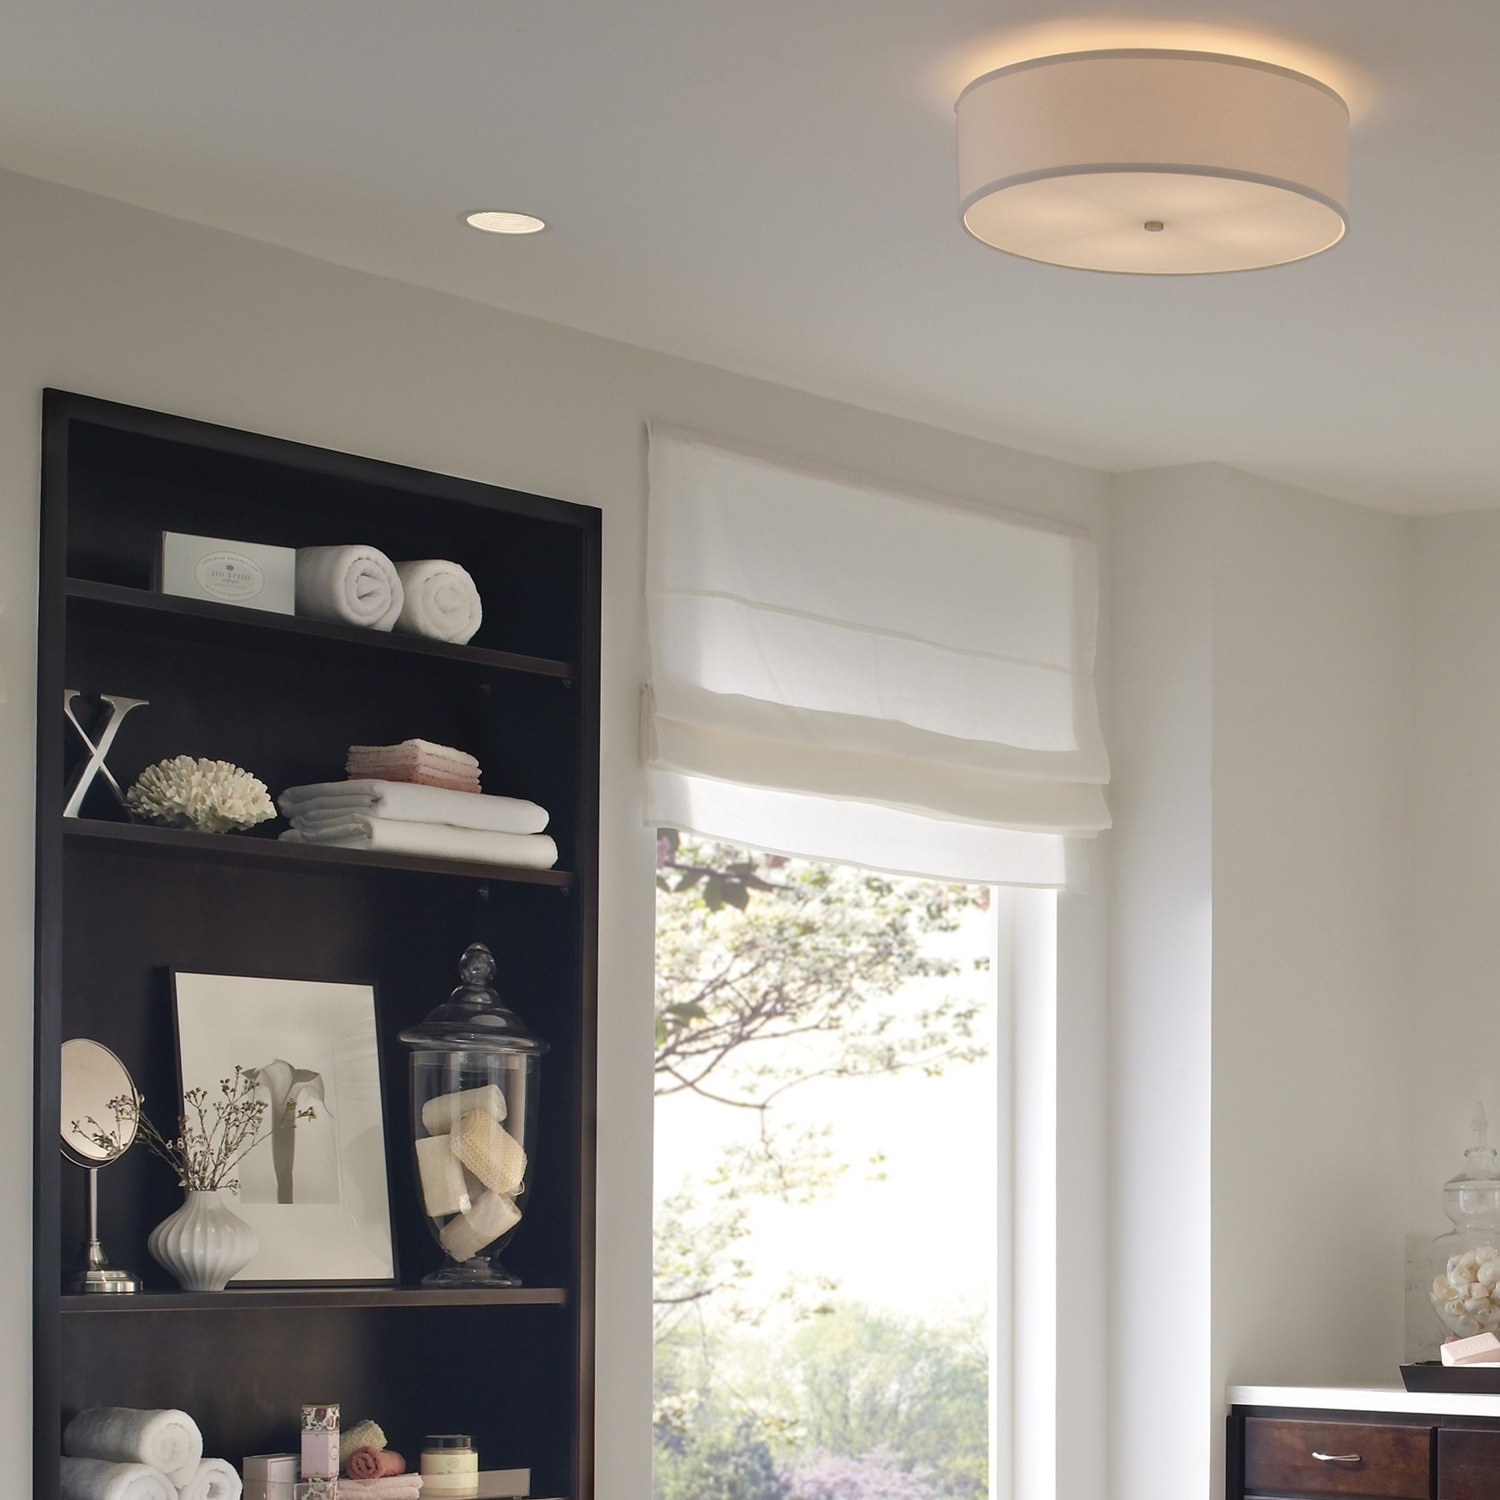 Design Necessities Lighting For 2019 Chandeliers For Low Ceilings (Gallery 3 of 20)